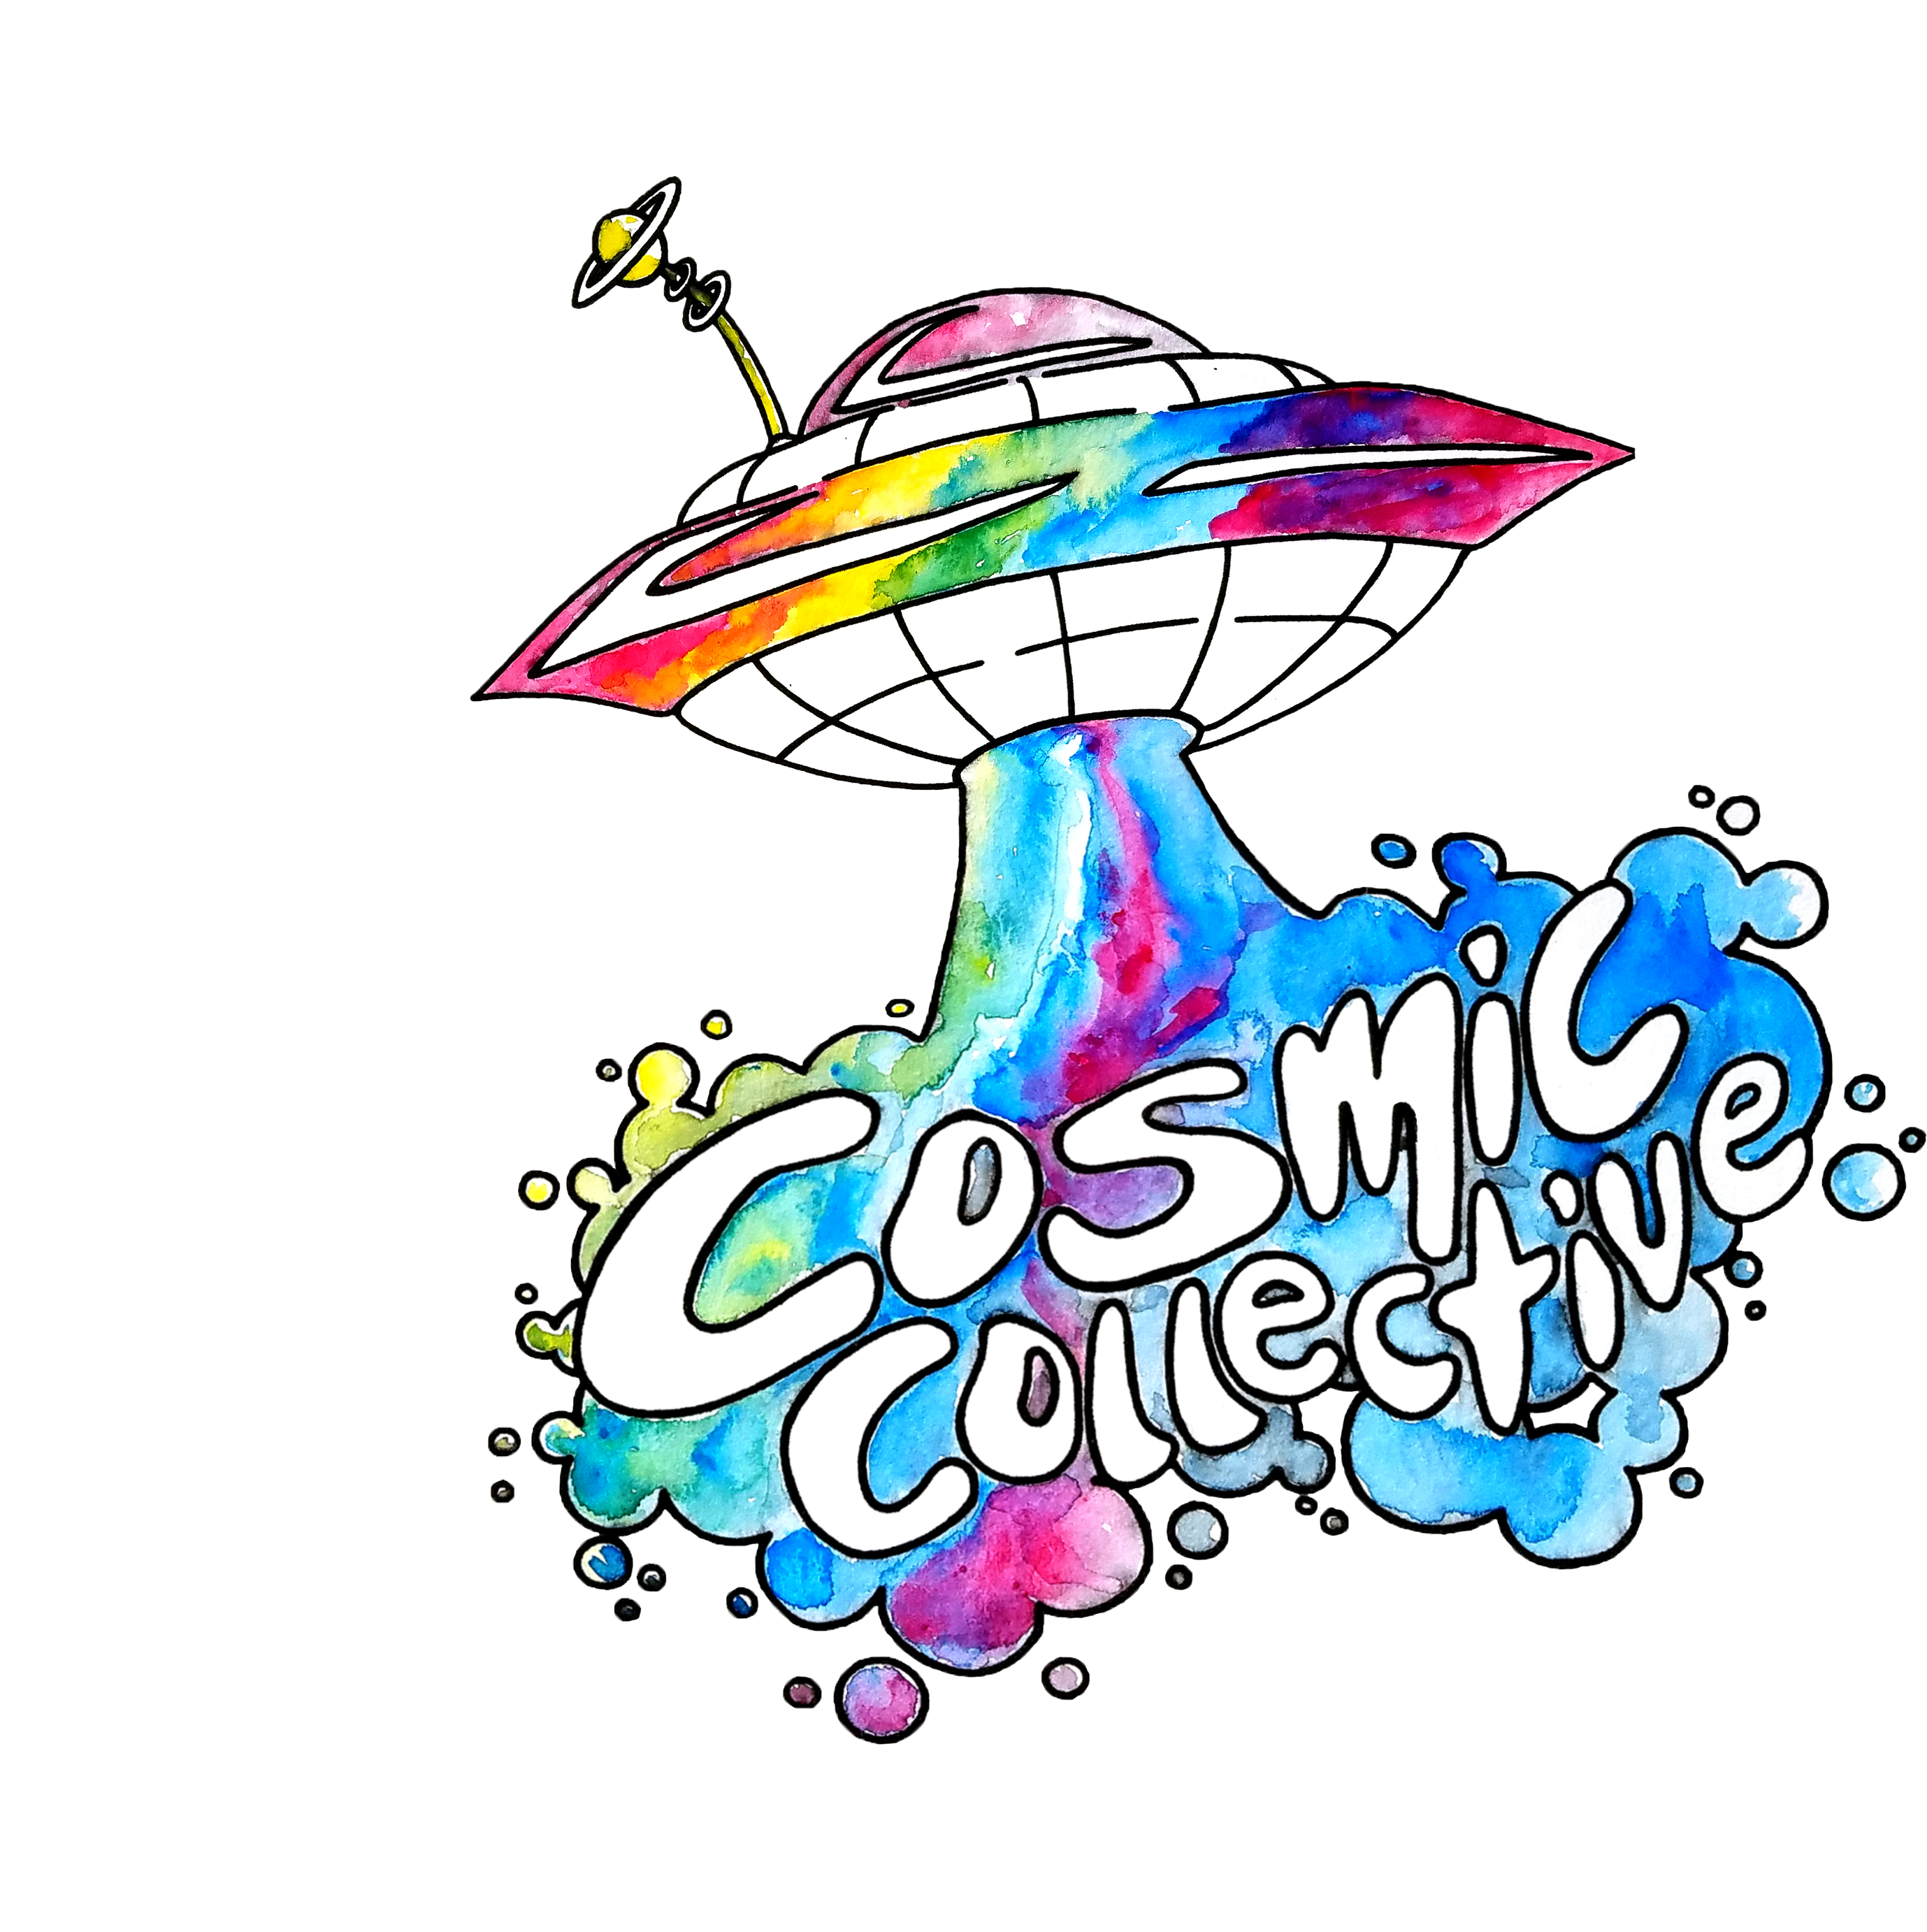 Cosmic Collective